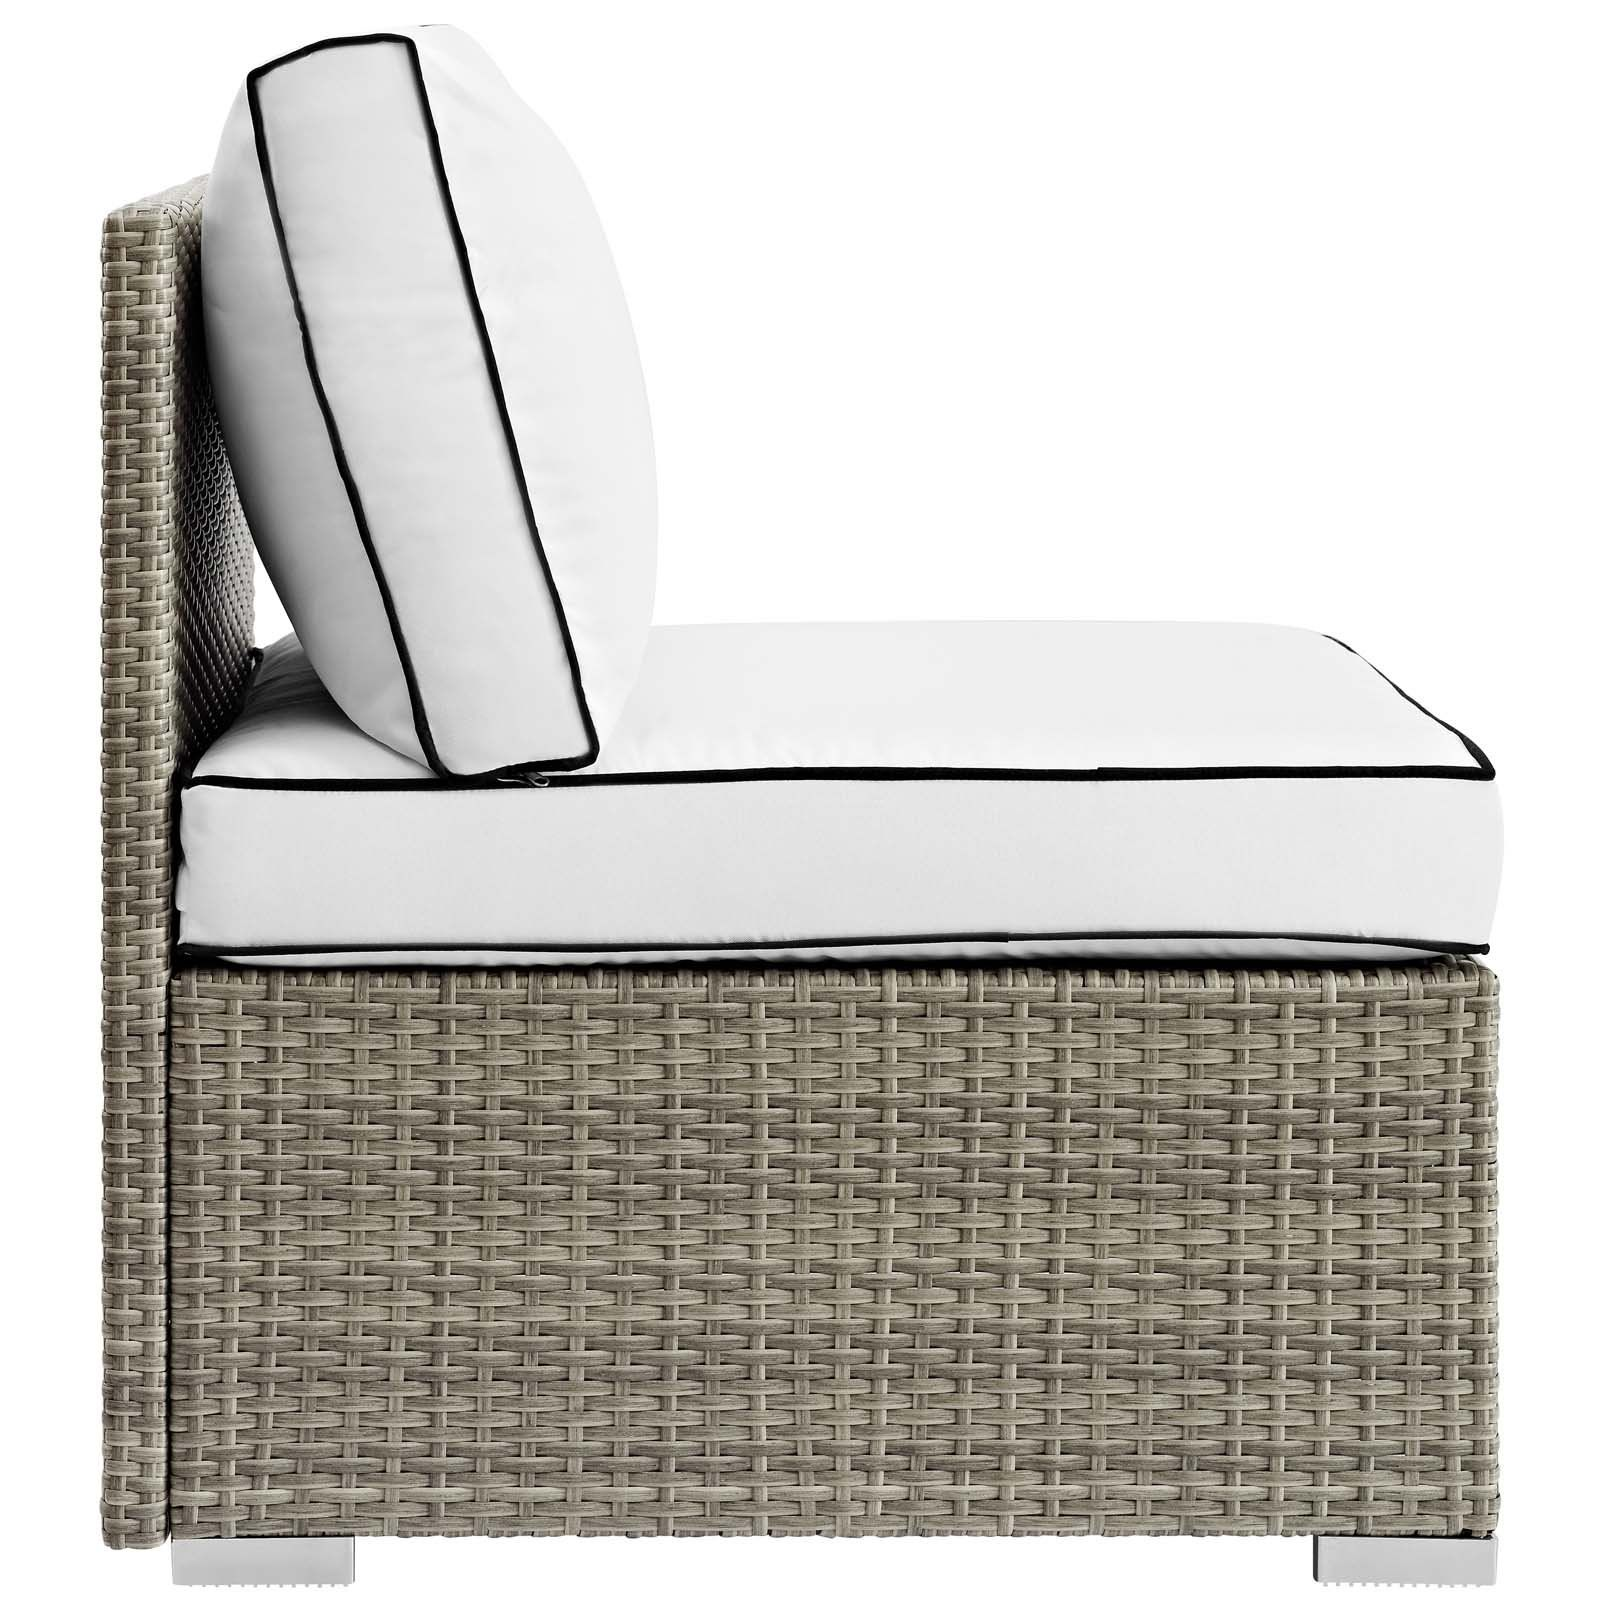 Modway Repose Outdoor Patio Armless Chair, Multiple Colors